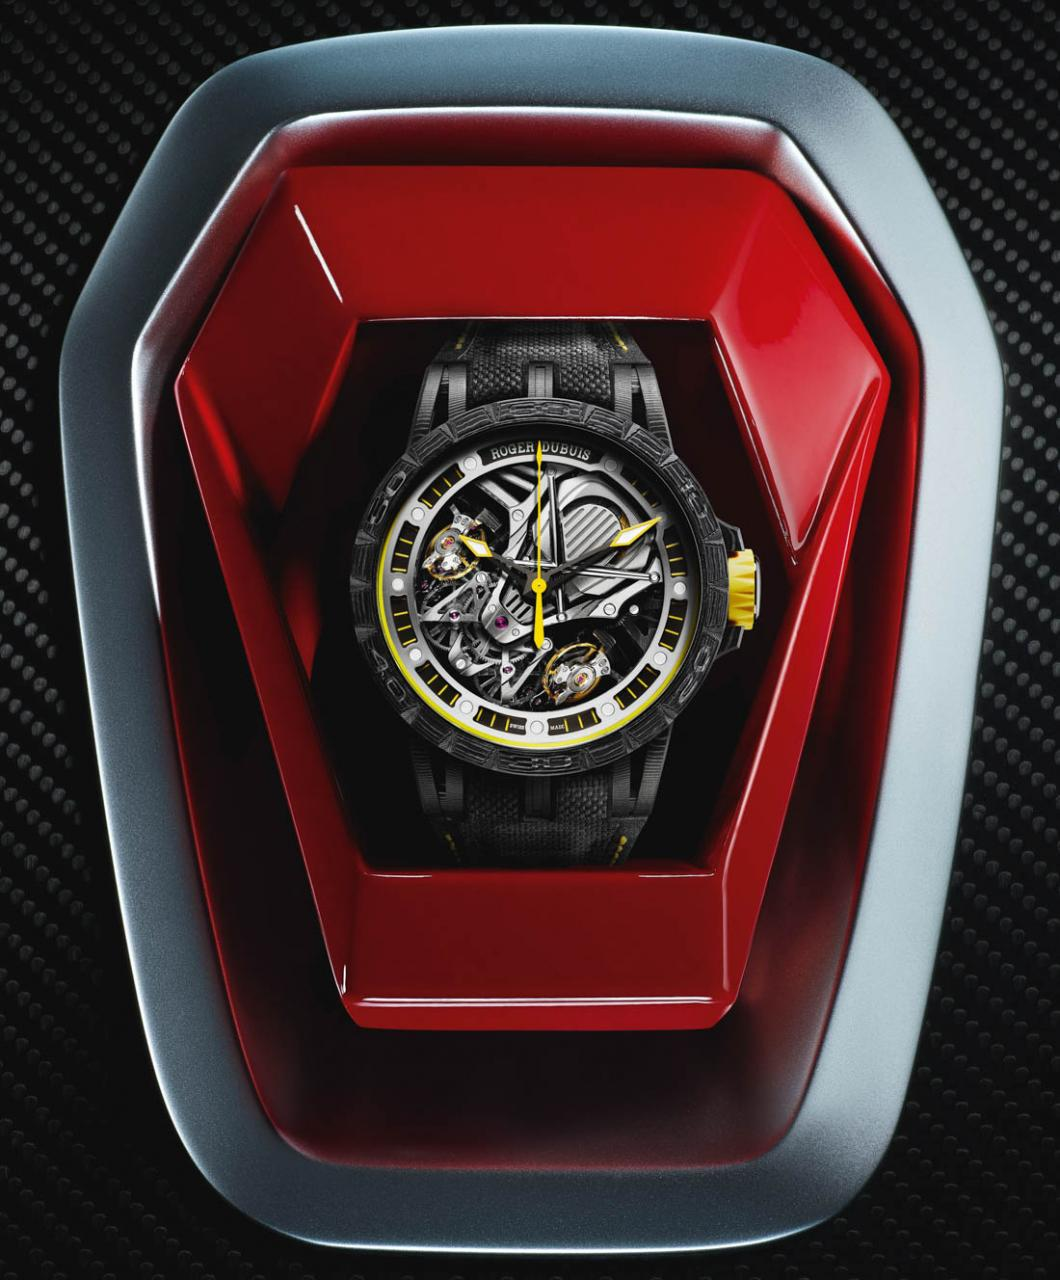 Roger Dubuis Becomes Official Partner Of Lamborghini, Launches 2 Watches With All-New Duotor Caliber